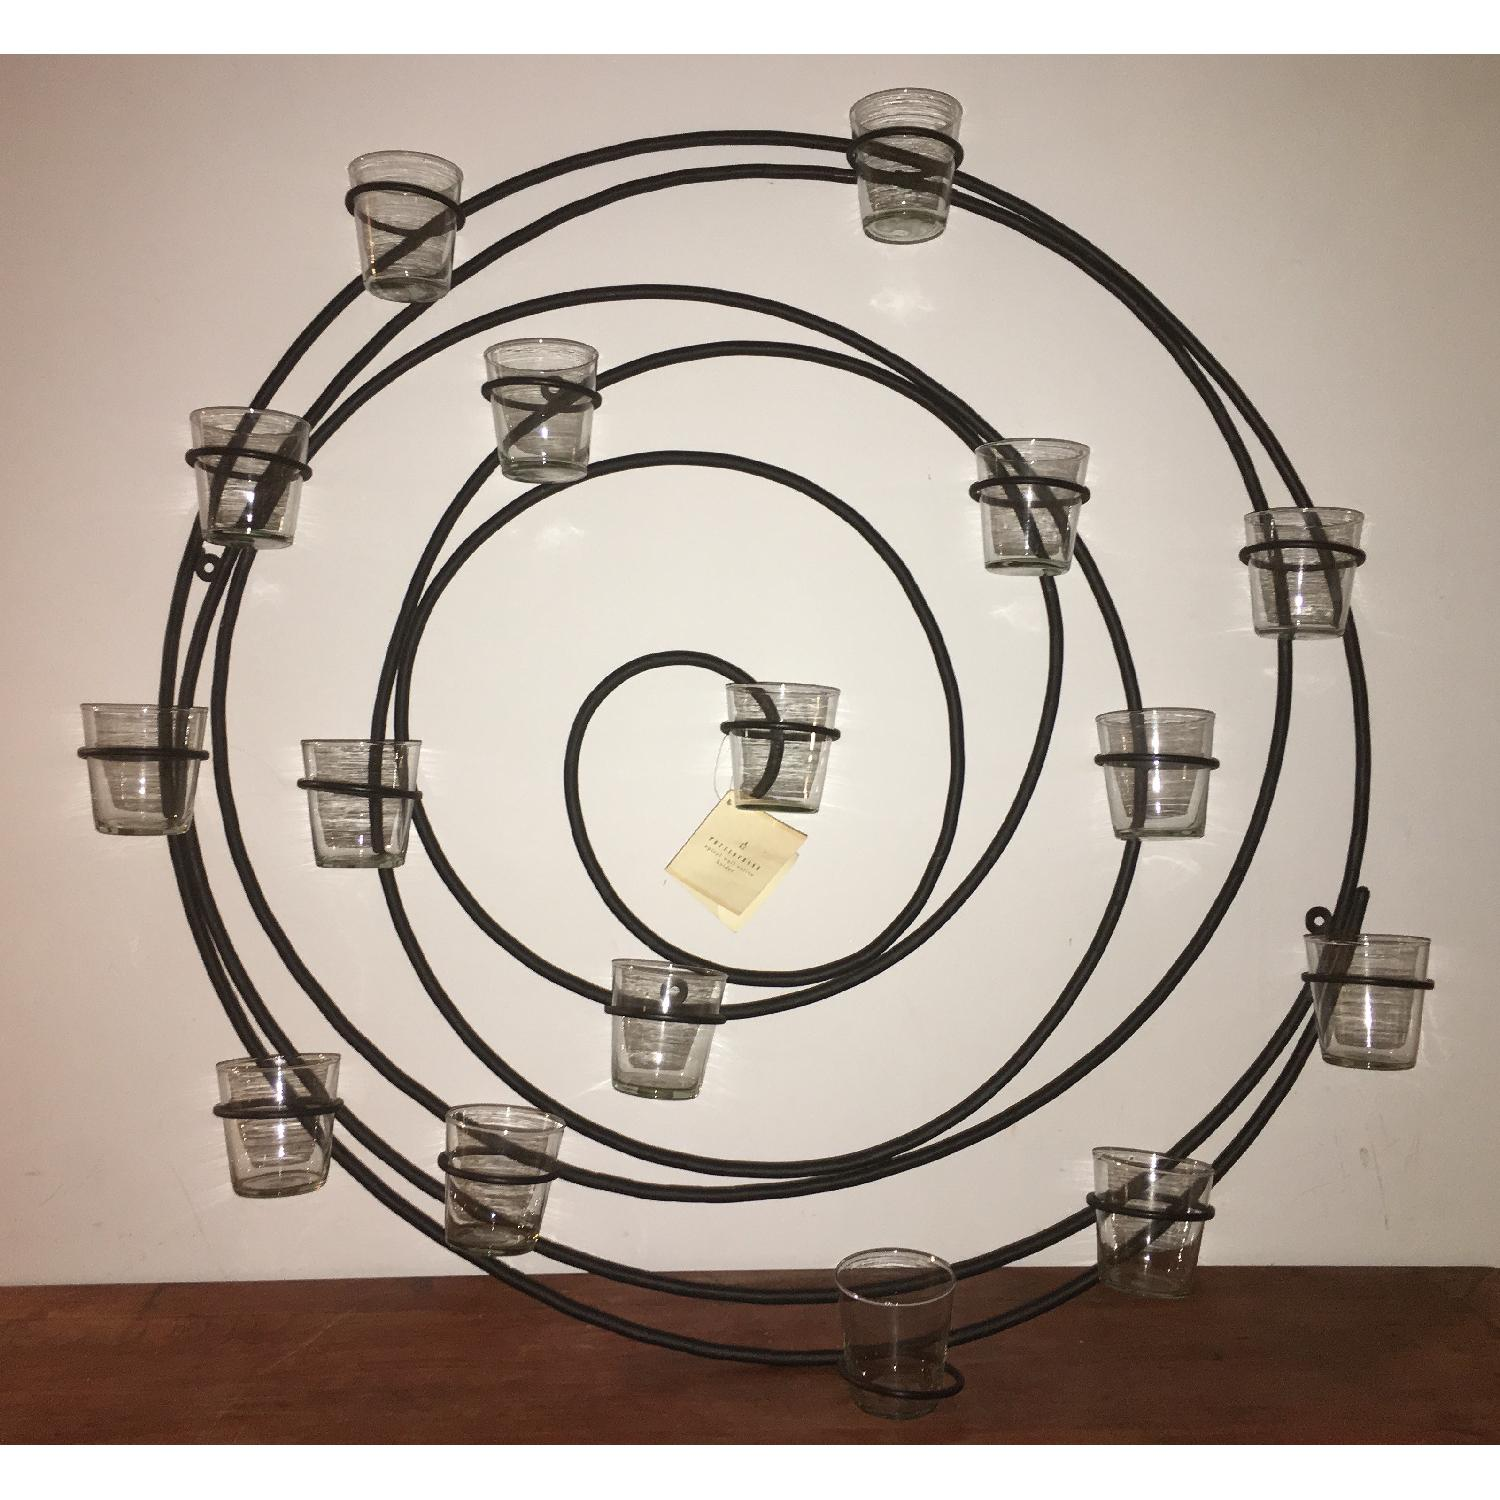 Pottery Barn Wrought Iron Spiral Wall Mount 16 Votive Candle Holder - image-1